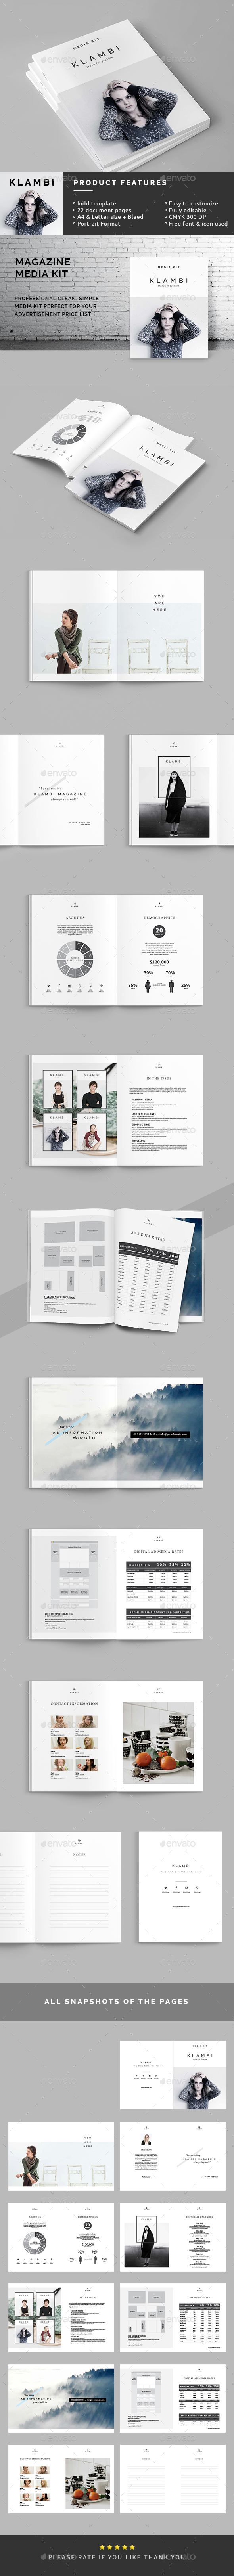 Magazine Media Kit - Magazines Print Templates